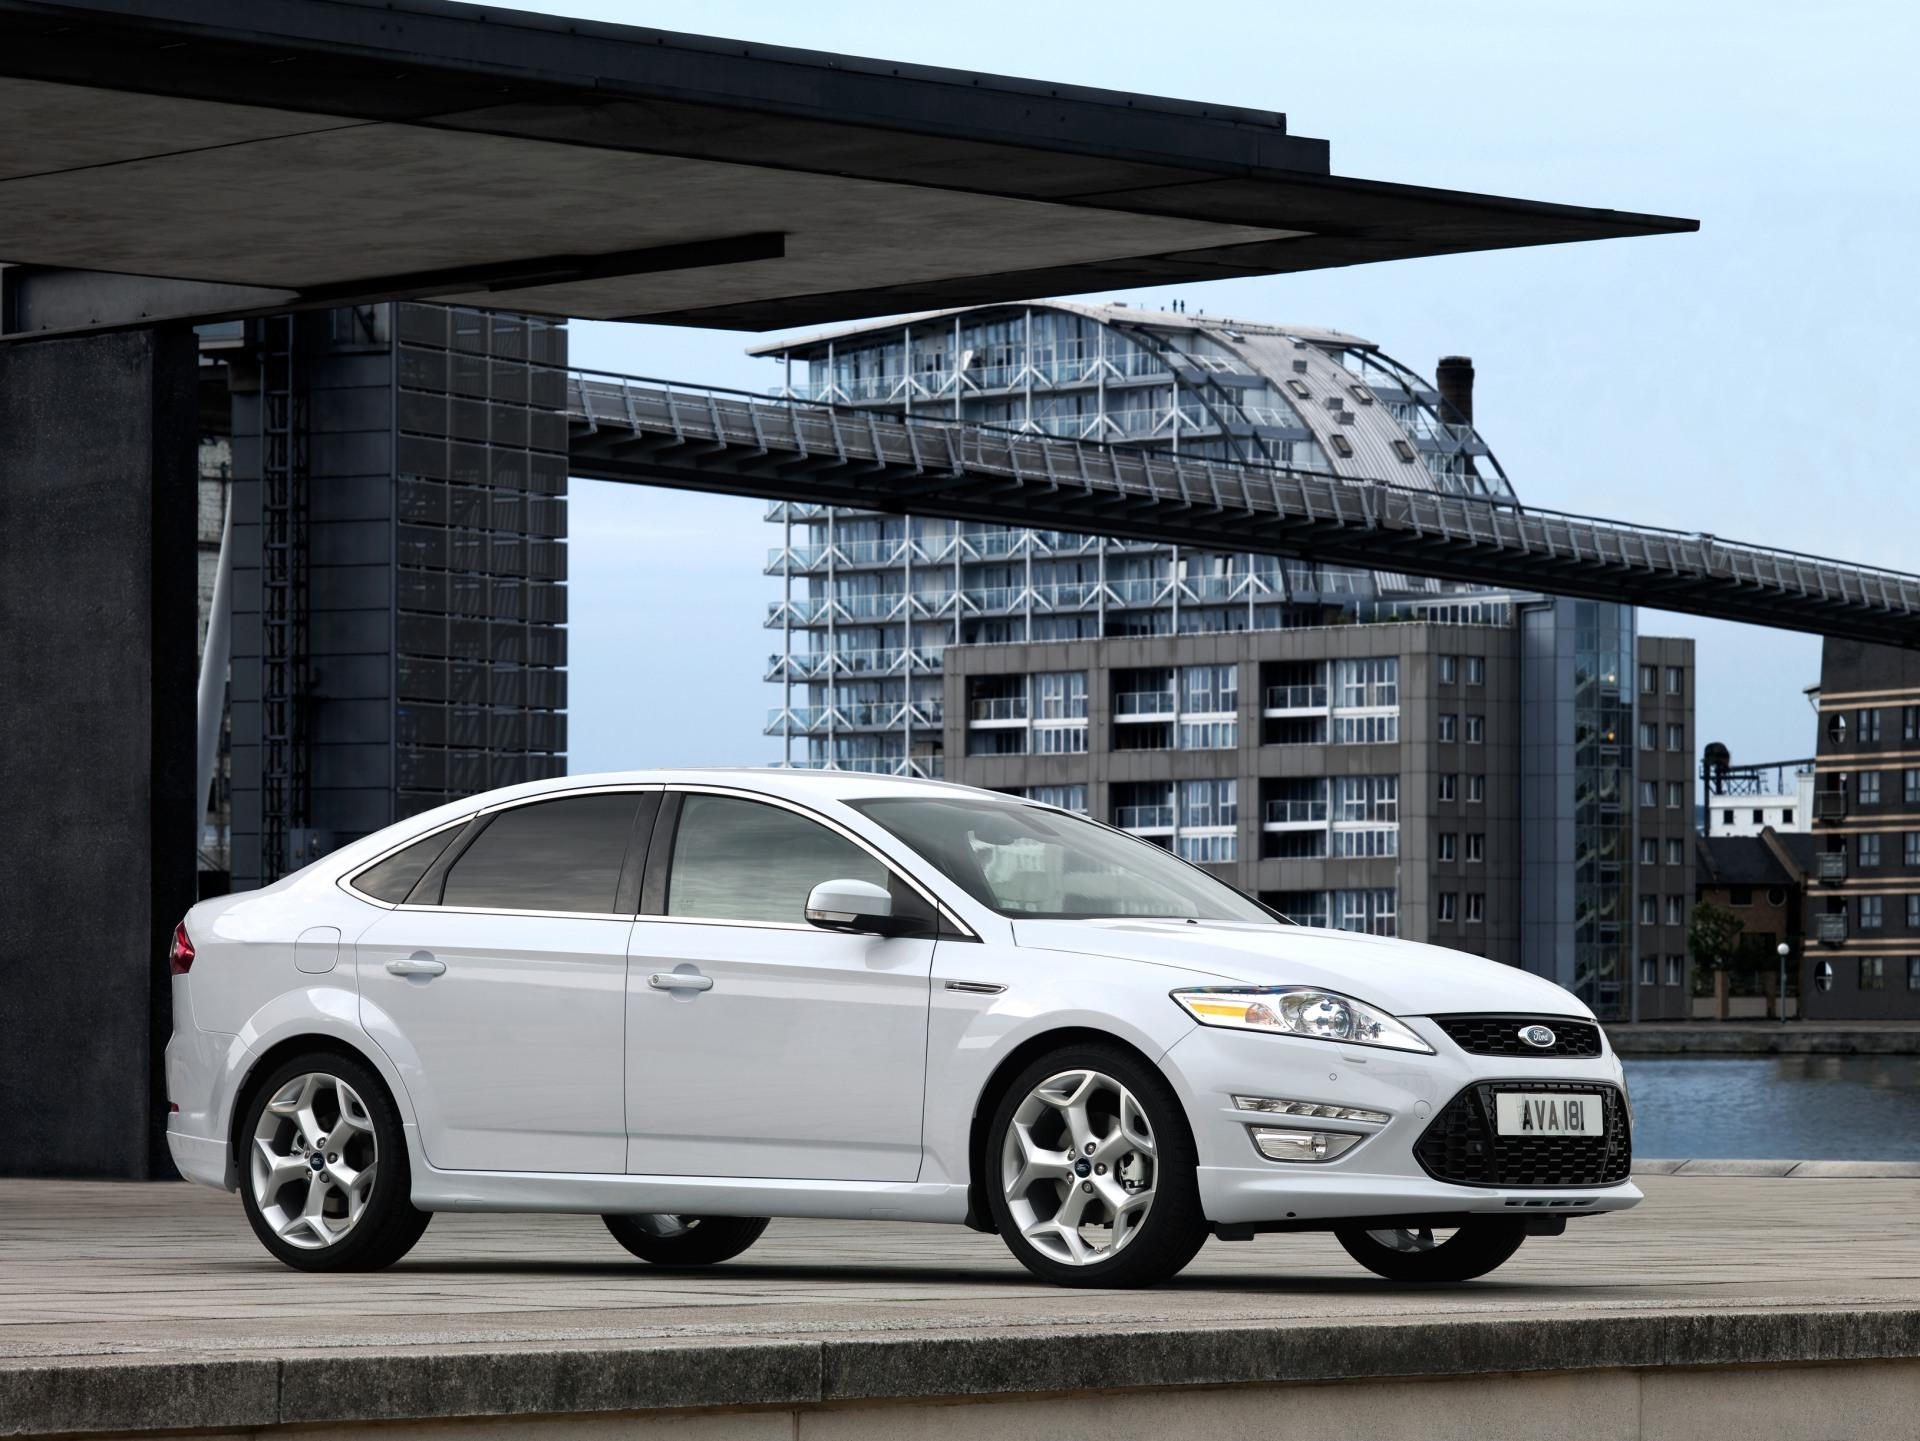 2011 ford mondeo technical specifications and data engine dimensions and mechanical details. Black Bedroom Furniture Sets. Home Design Ideas